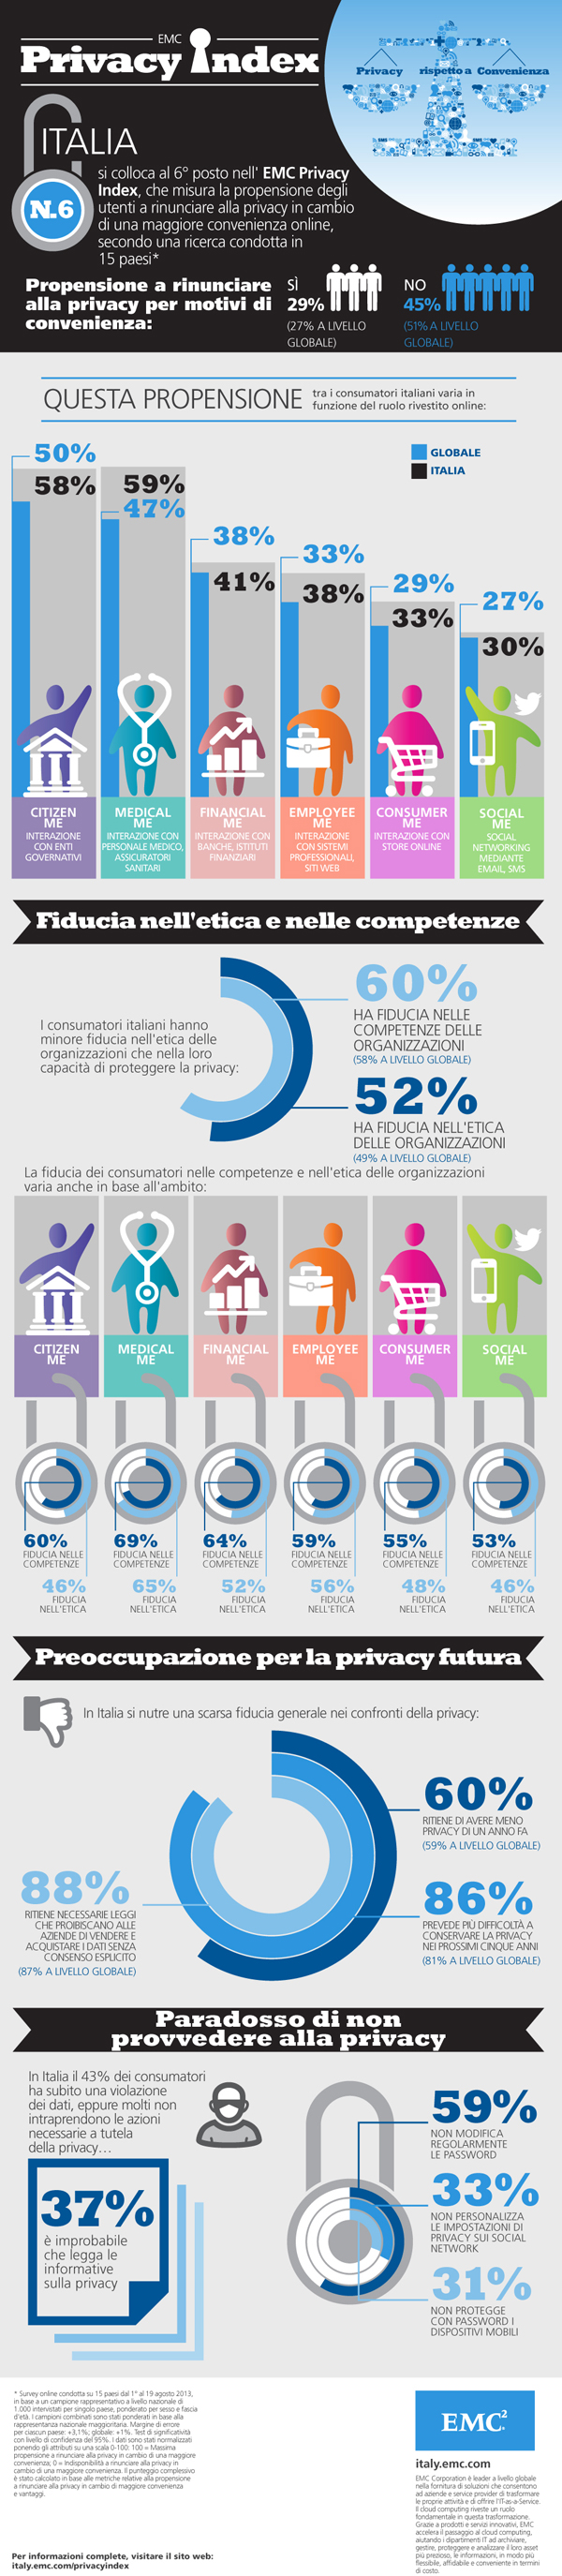 EMC Privacy Index: infografica